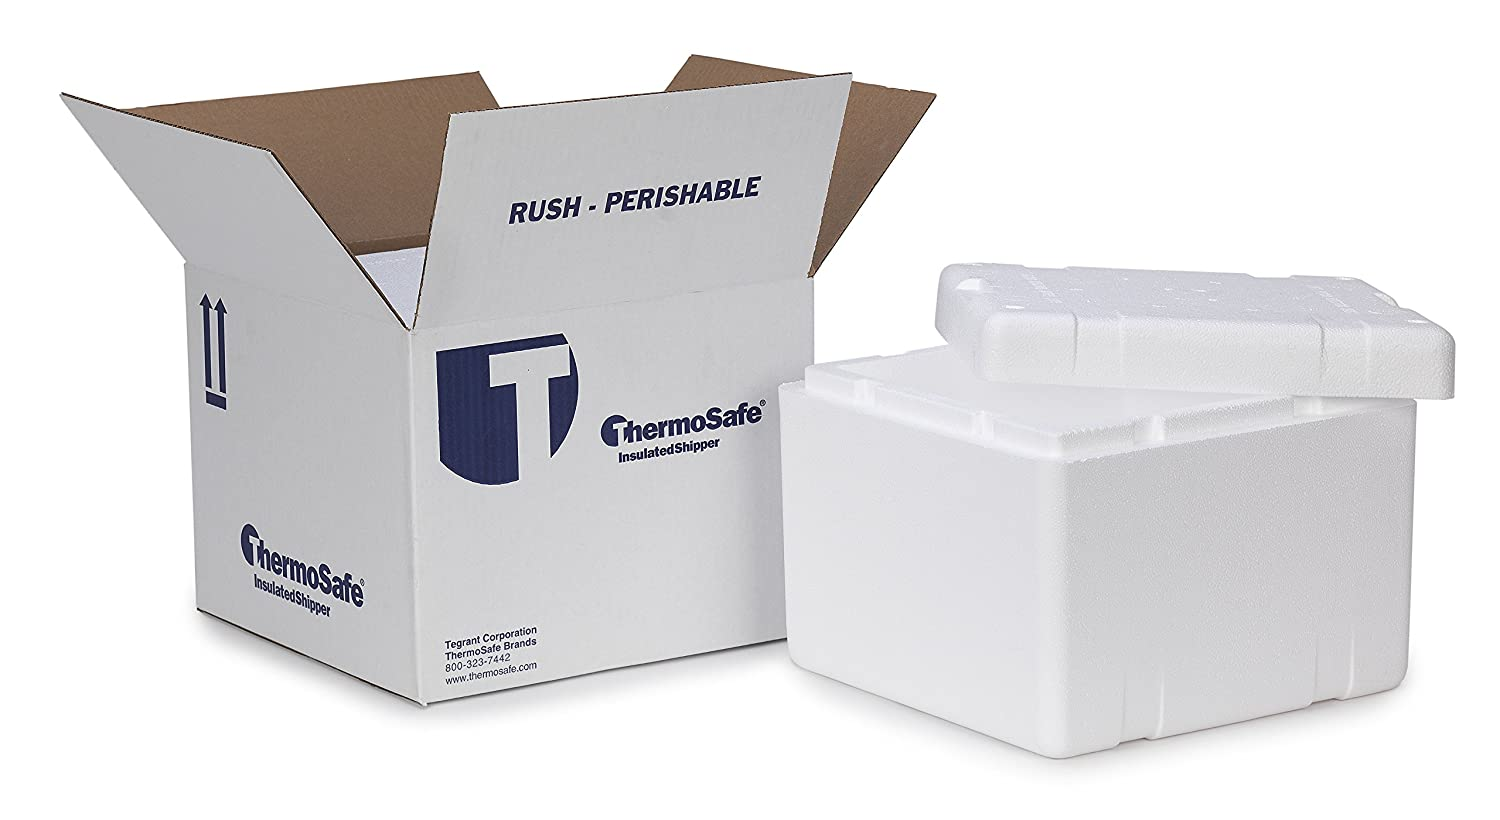 Amazon.com: Thermosafe 413 Cold Insulated Shipping Box Container ...